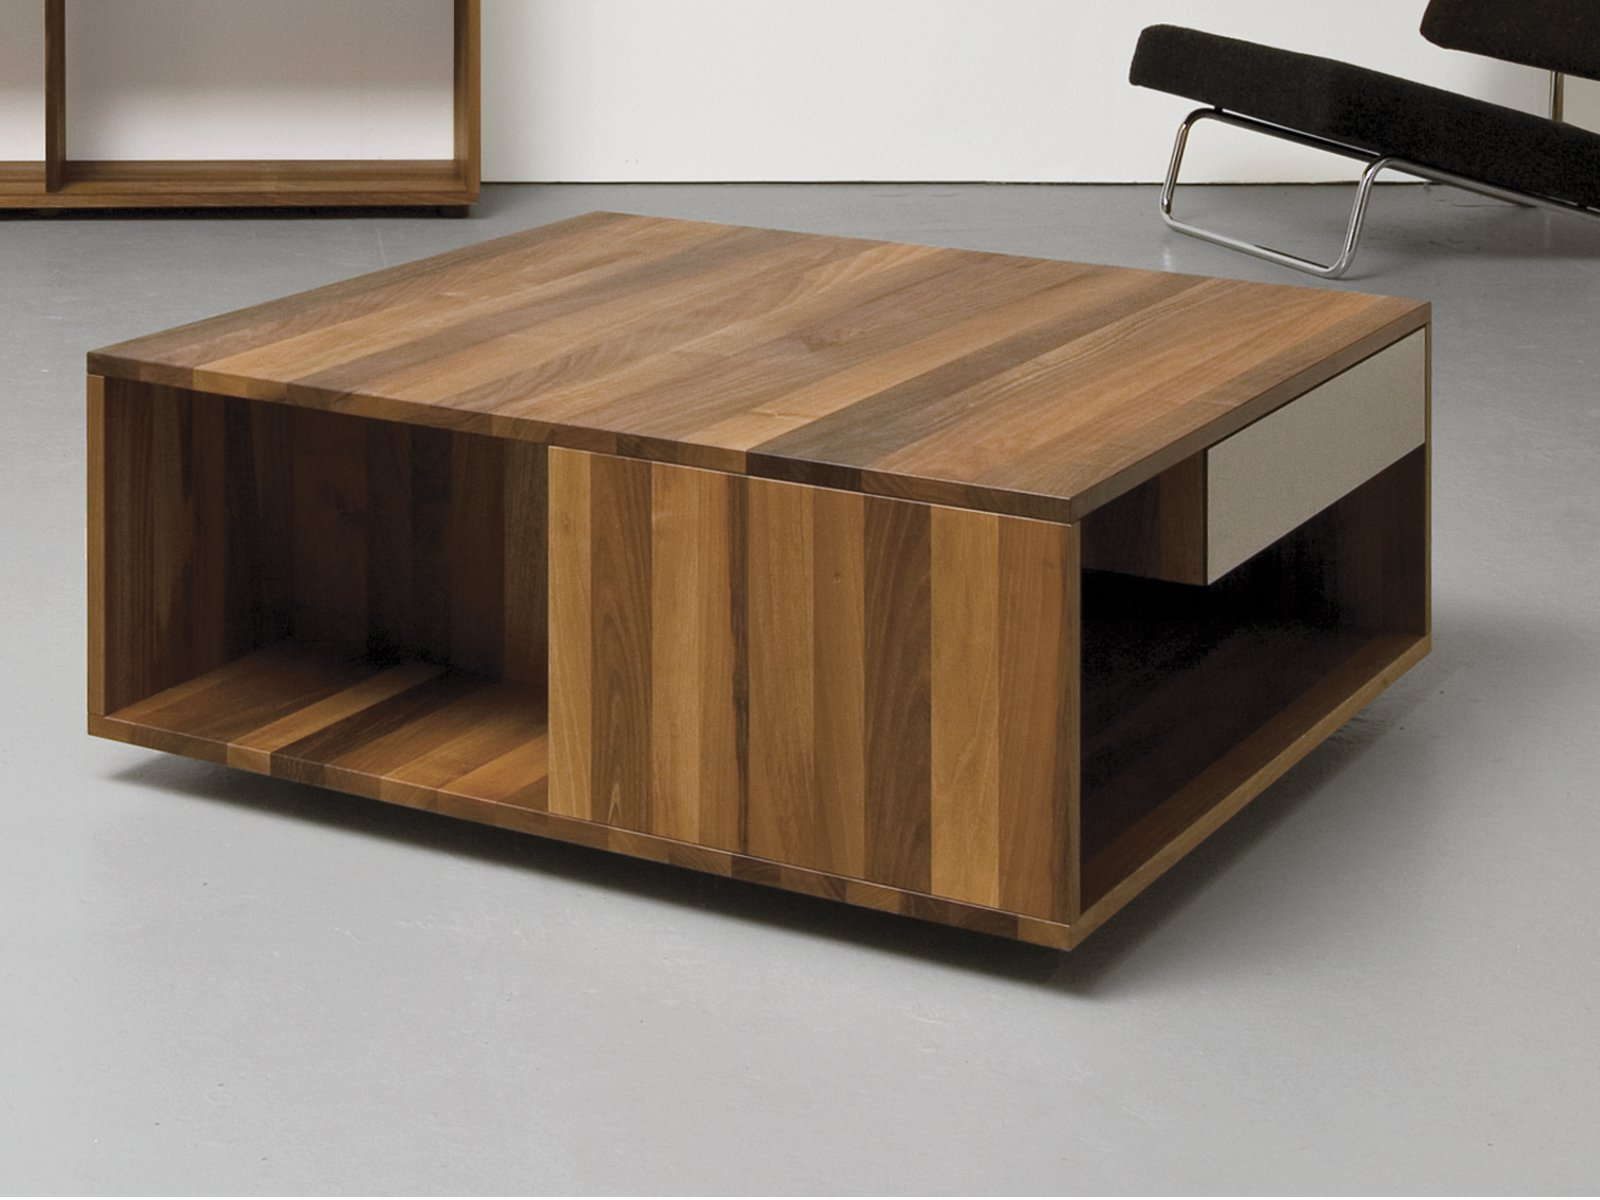 Low coffee table with casters loft by sanktjohanser design matthias hubert sanktjohanser anda Coffee tables with casters